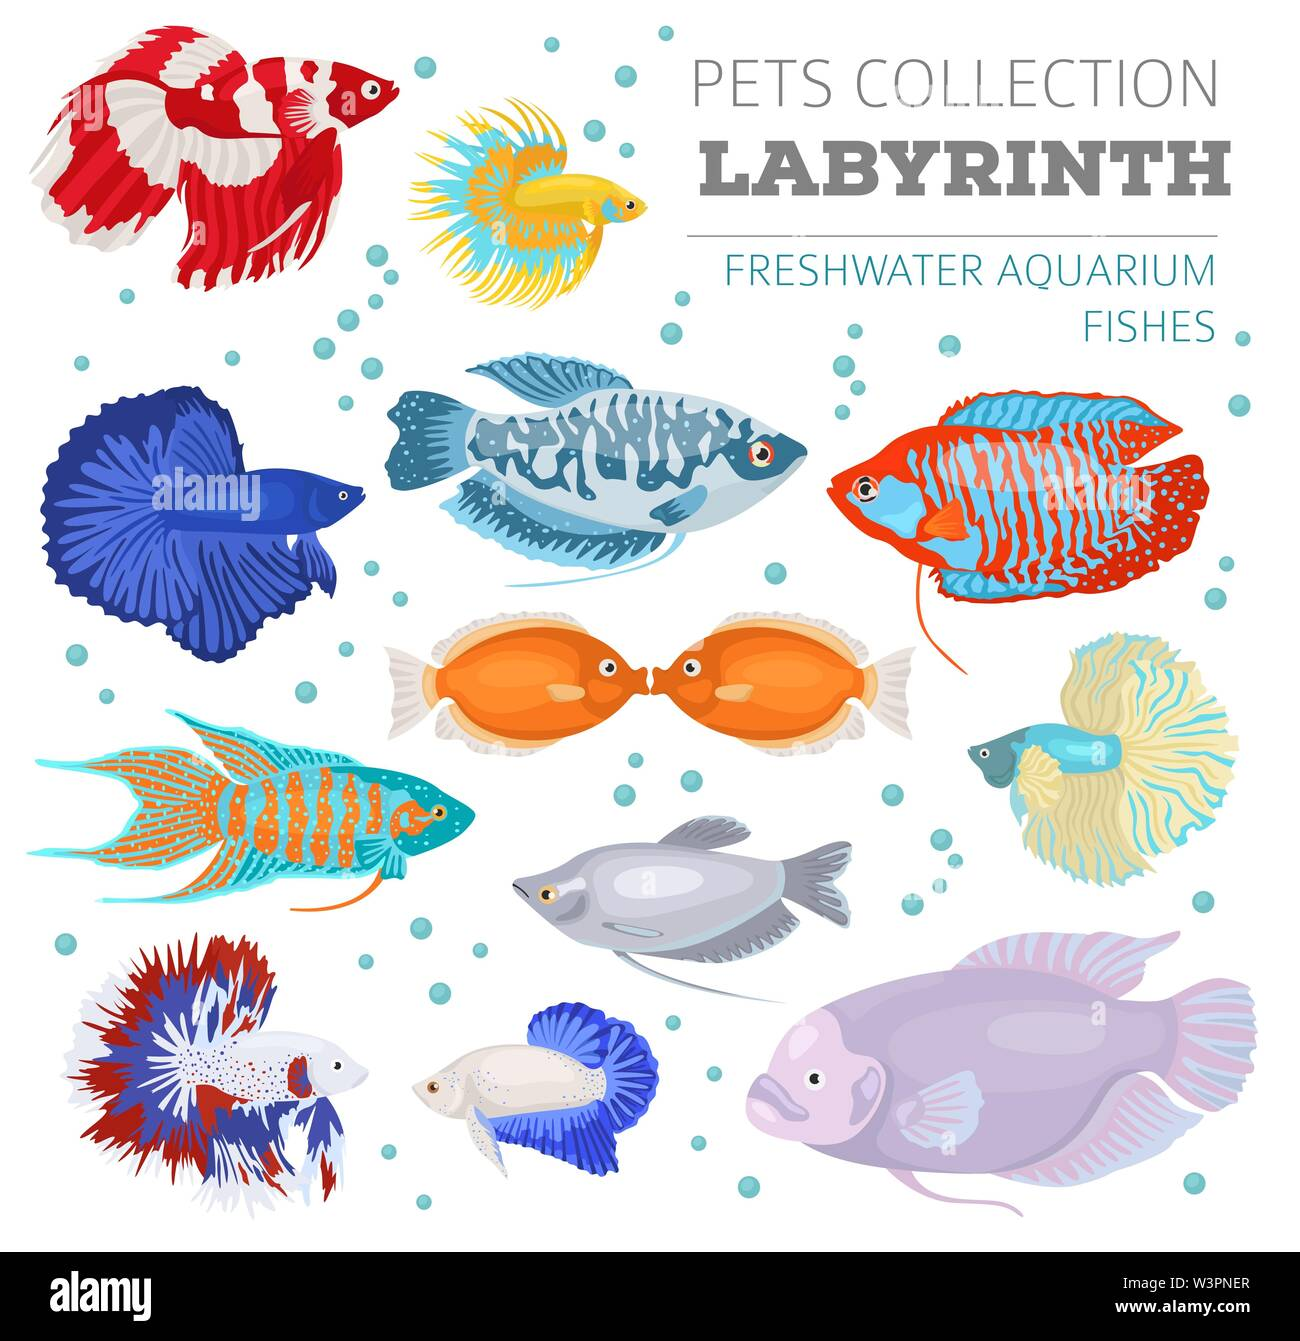 Freshwater aquarium fishes breeds icon set flat style isolated on white. Labyrinth fishes: betta, gourami. Create own infographic about pets. vector i Stock Vector